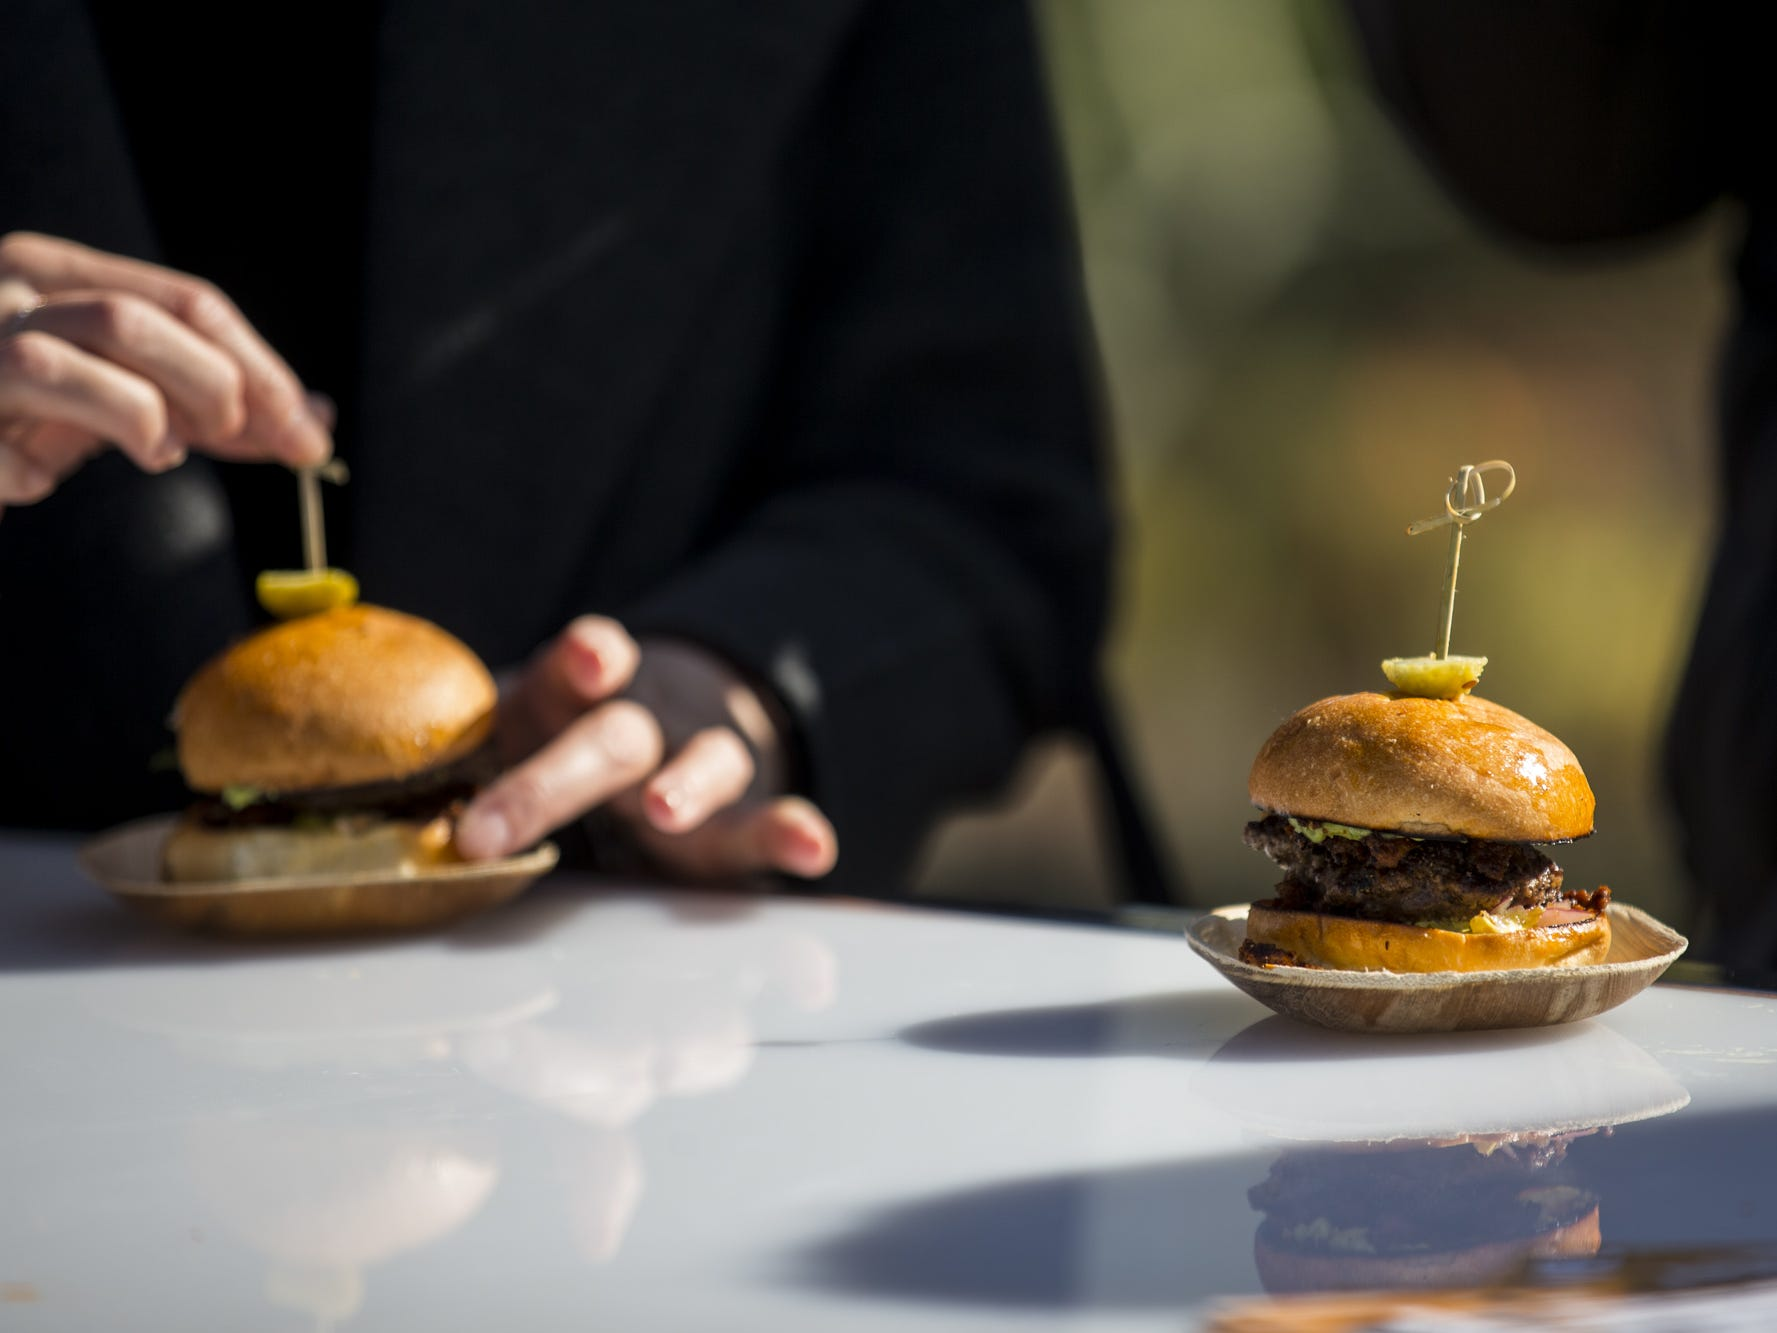 Chorizo and chuck sliders are pictured during Day 1 of the Devour Culinary Classic on Saturday, Feb. 23, 2019, at Desert Botanical Garden in Phoenix.